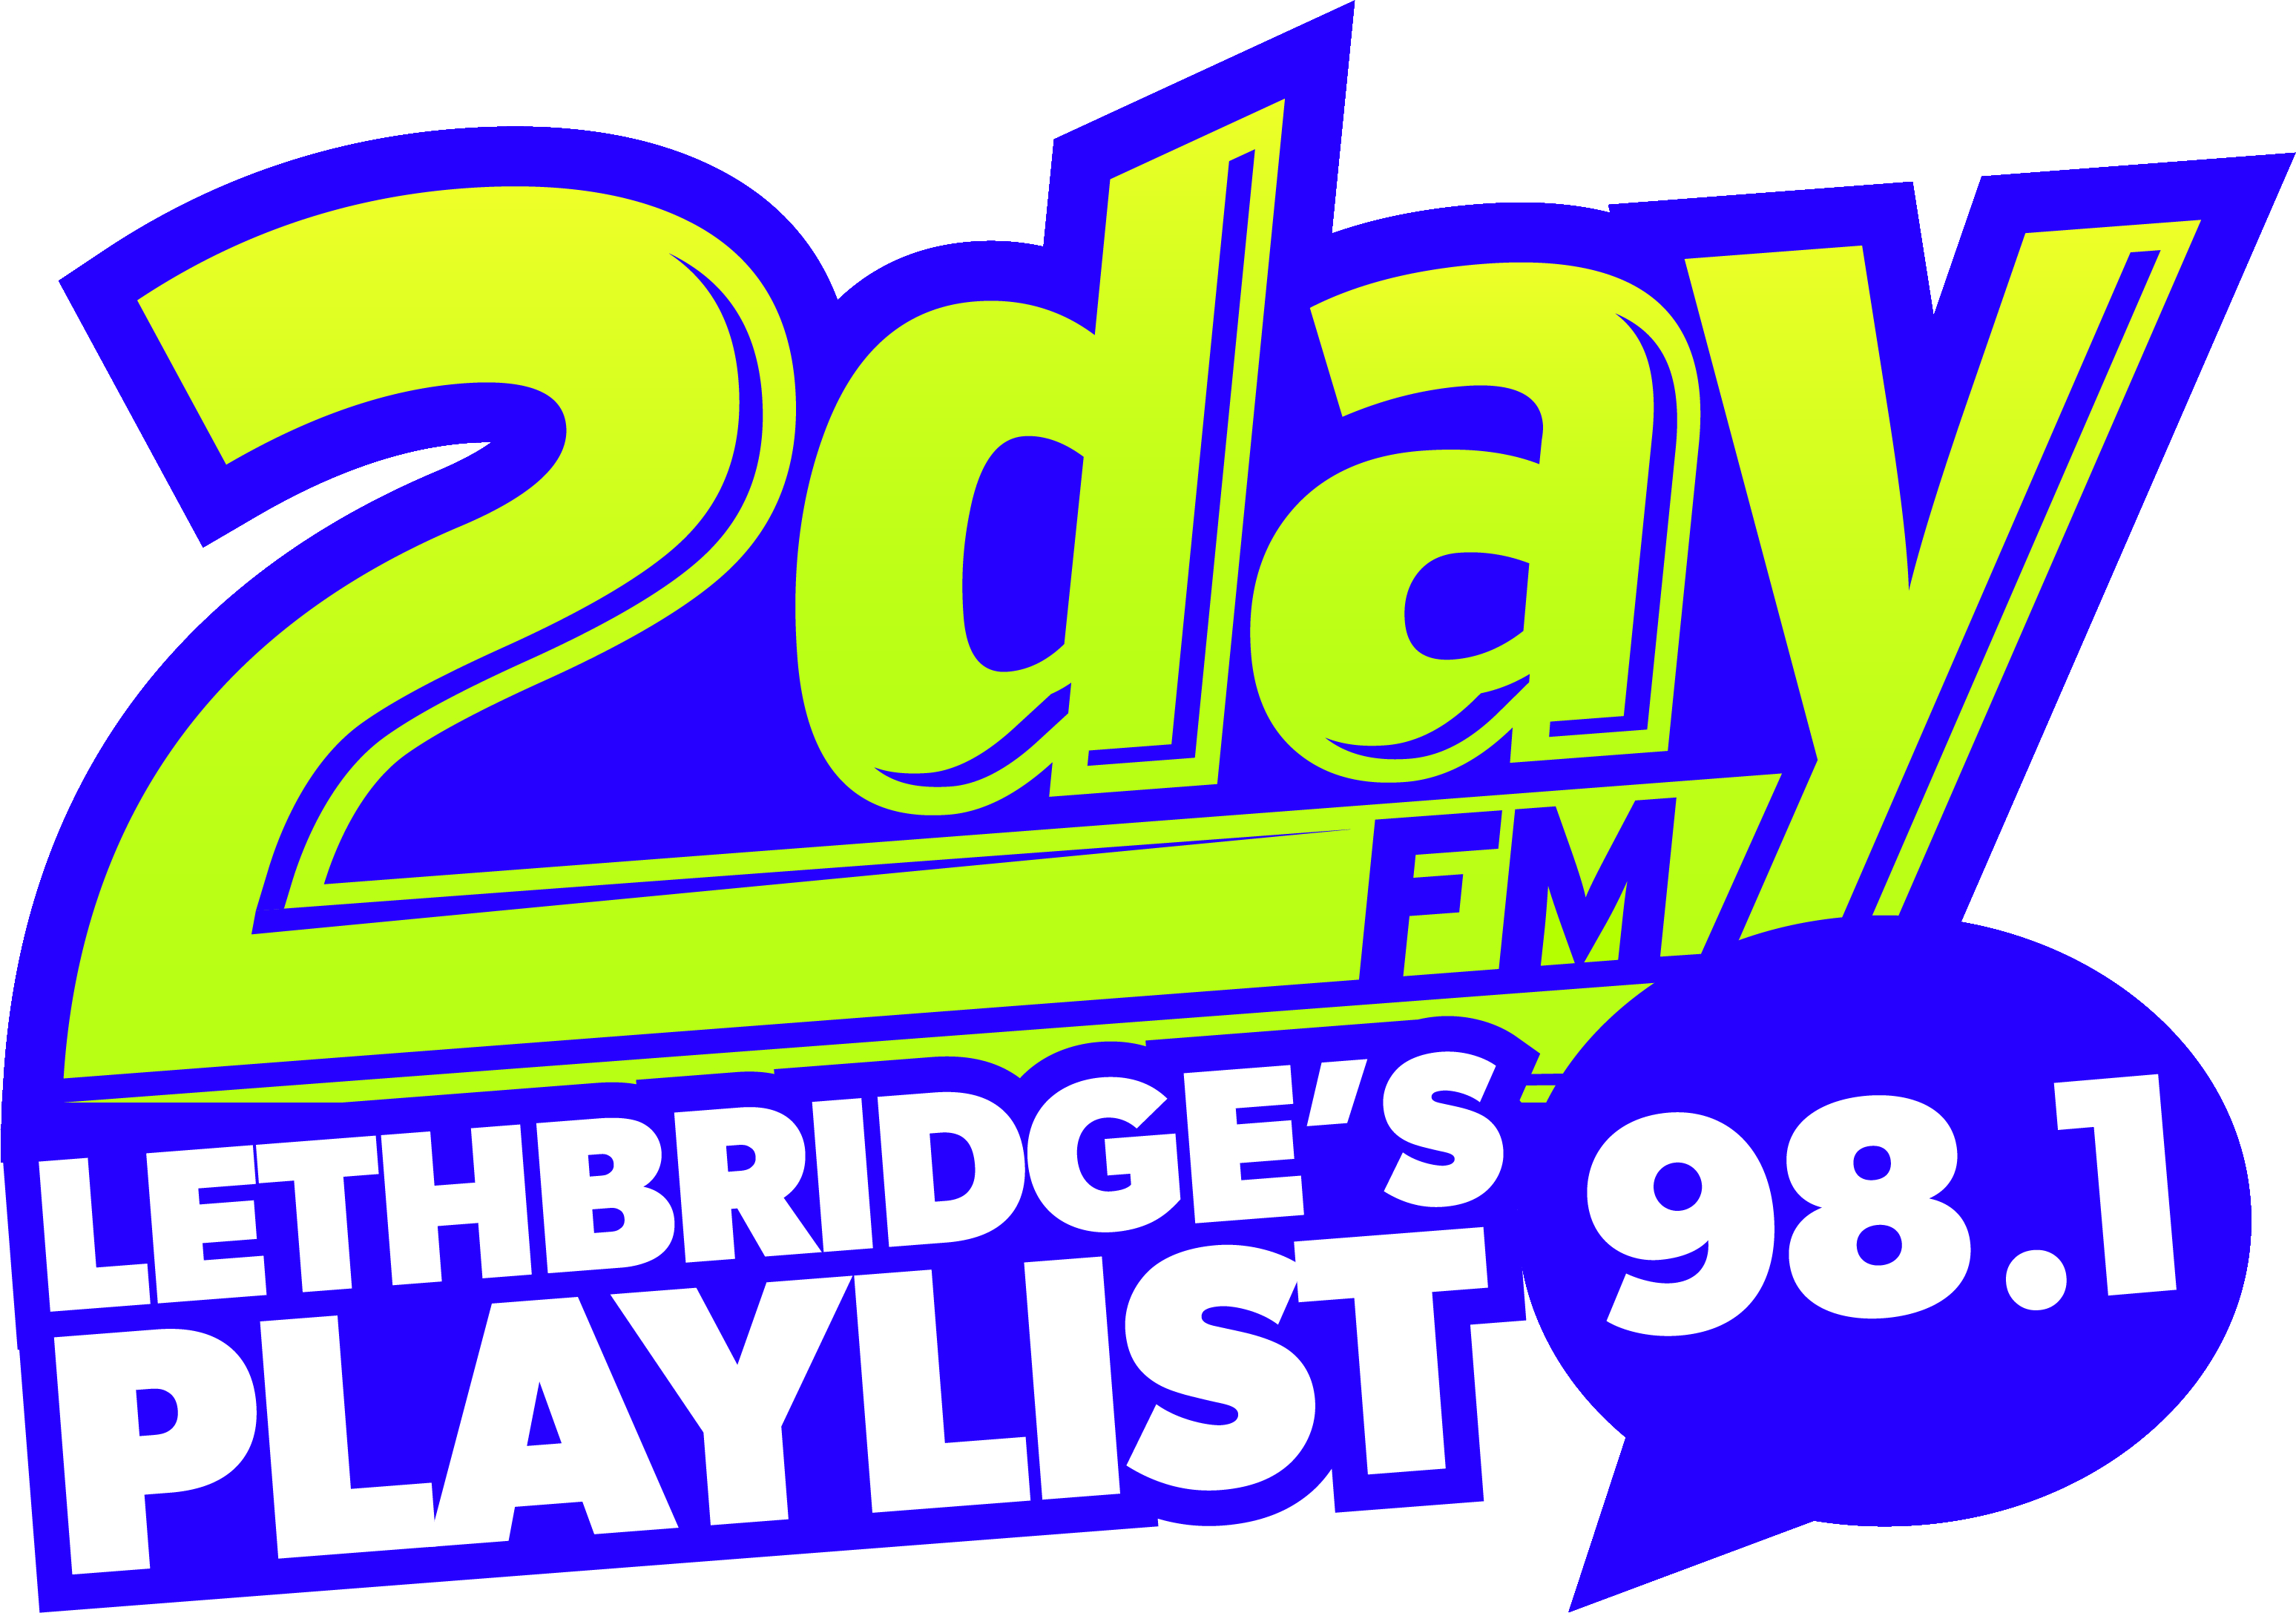 2dayFM-lethbridge-final-01